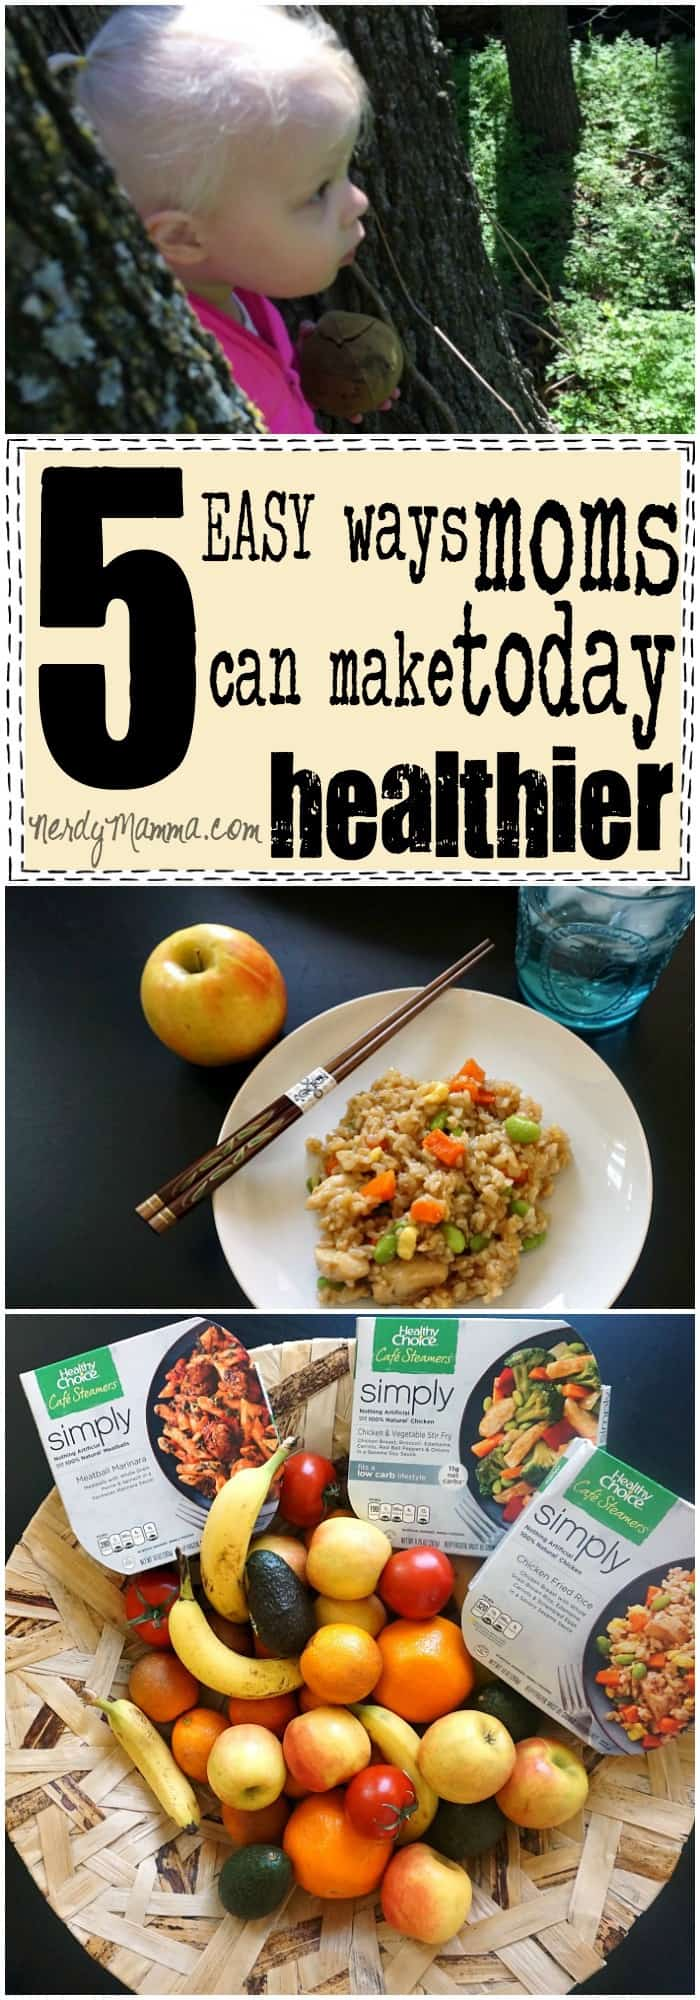 These 5 easy ways moms can make today healthier are so simple...but such great ideas.